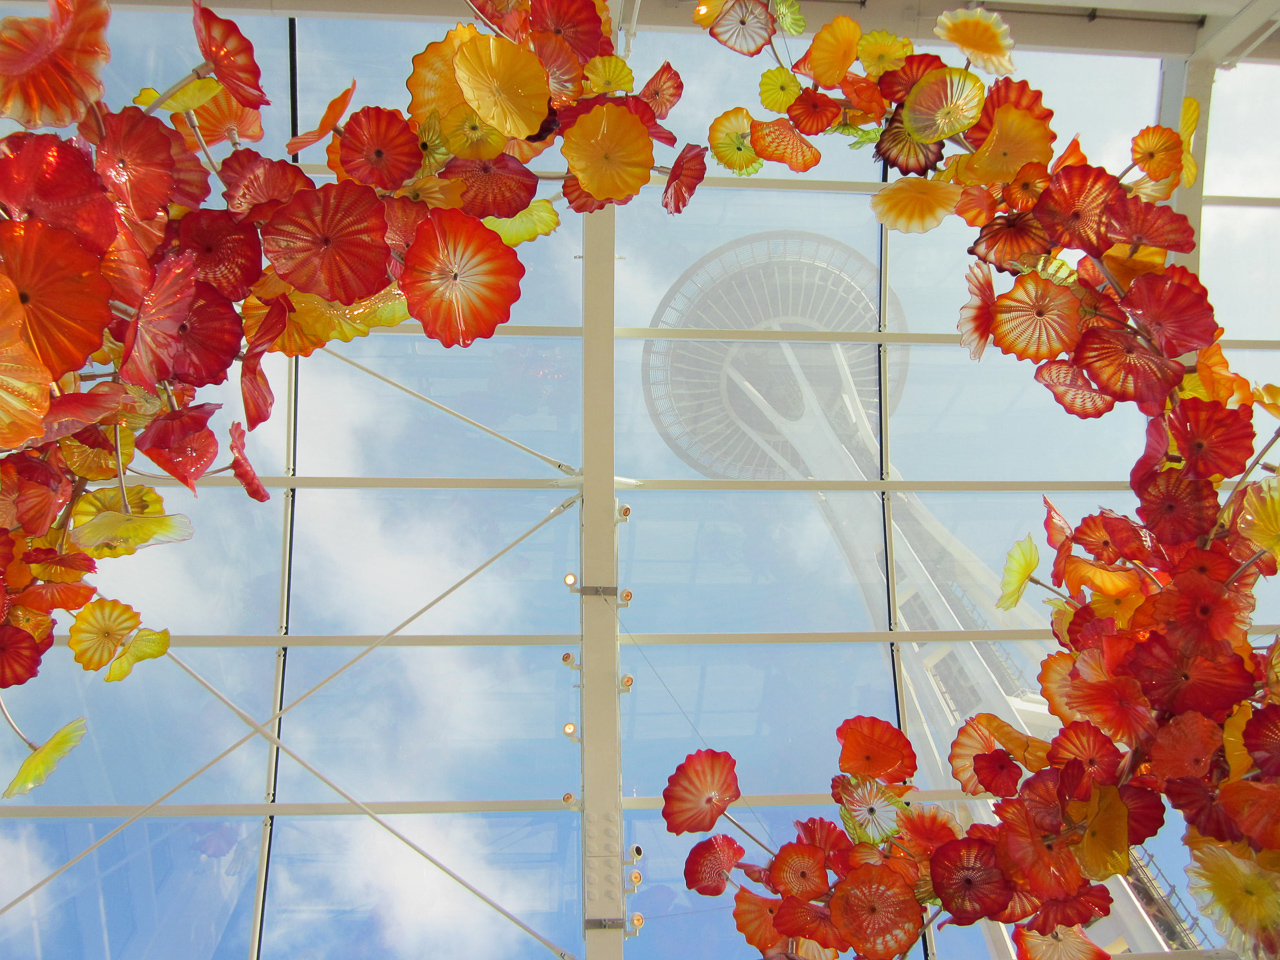 Space Needle through Chihuly Glass